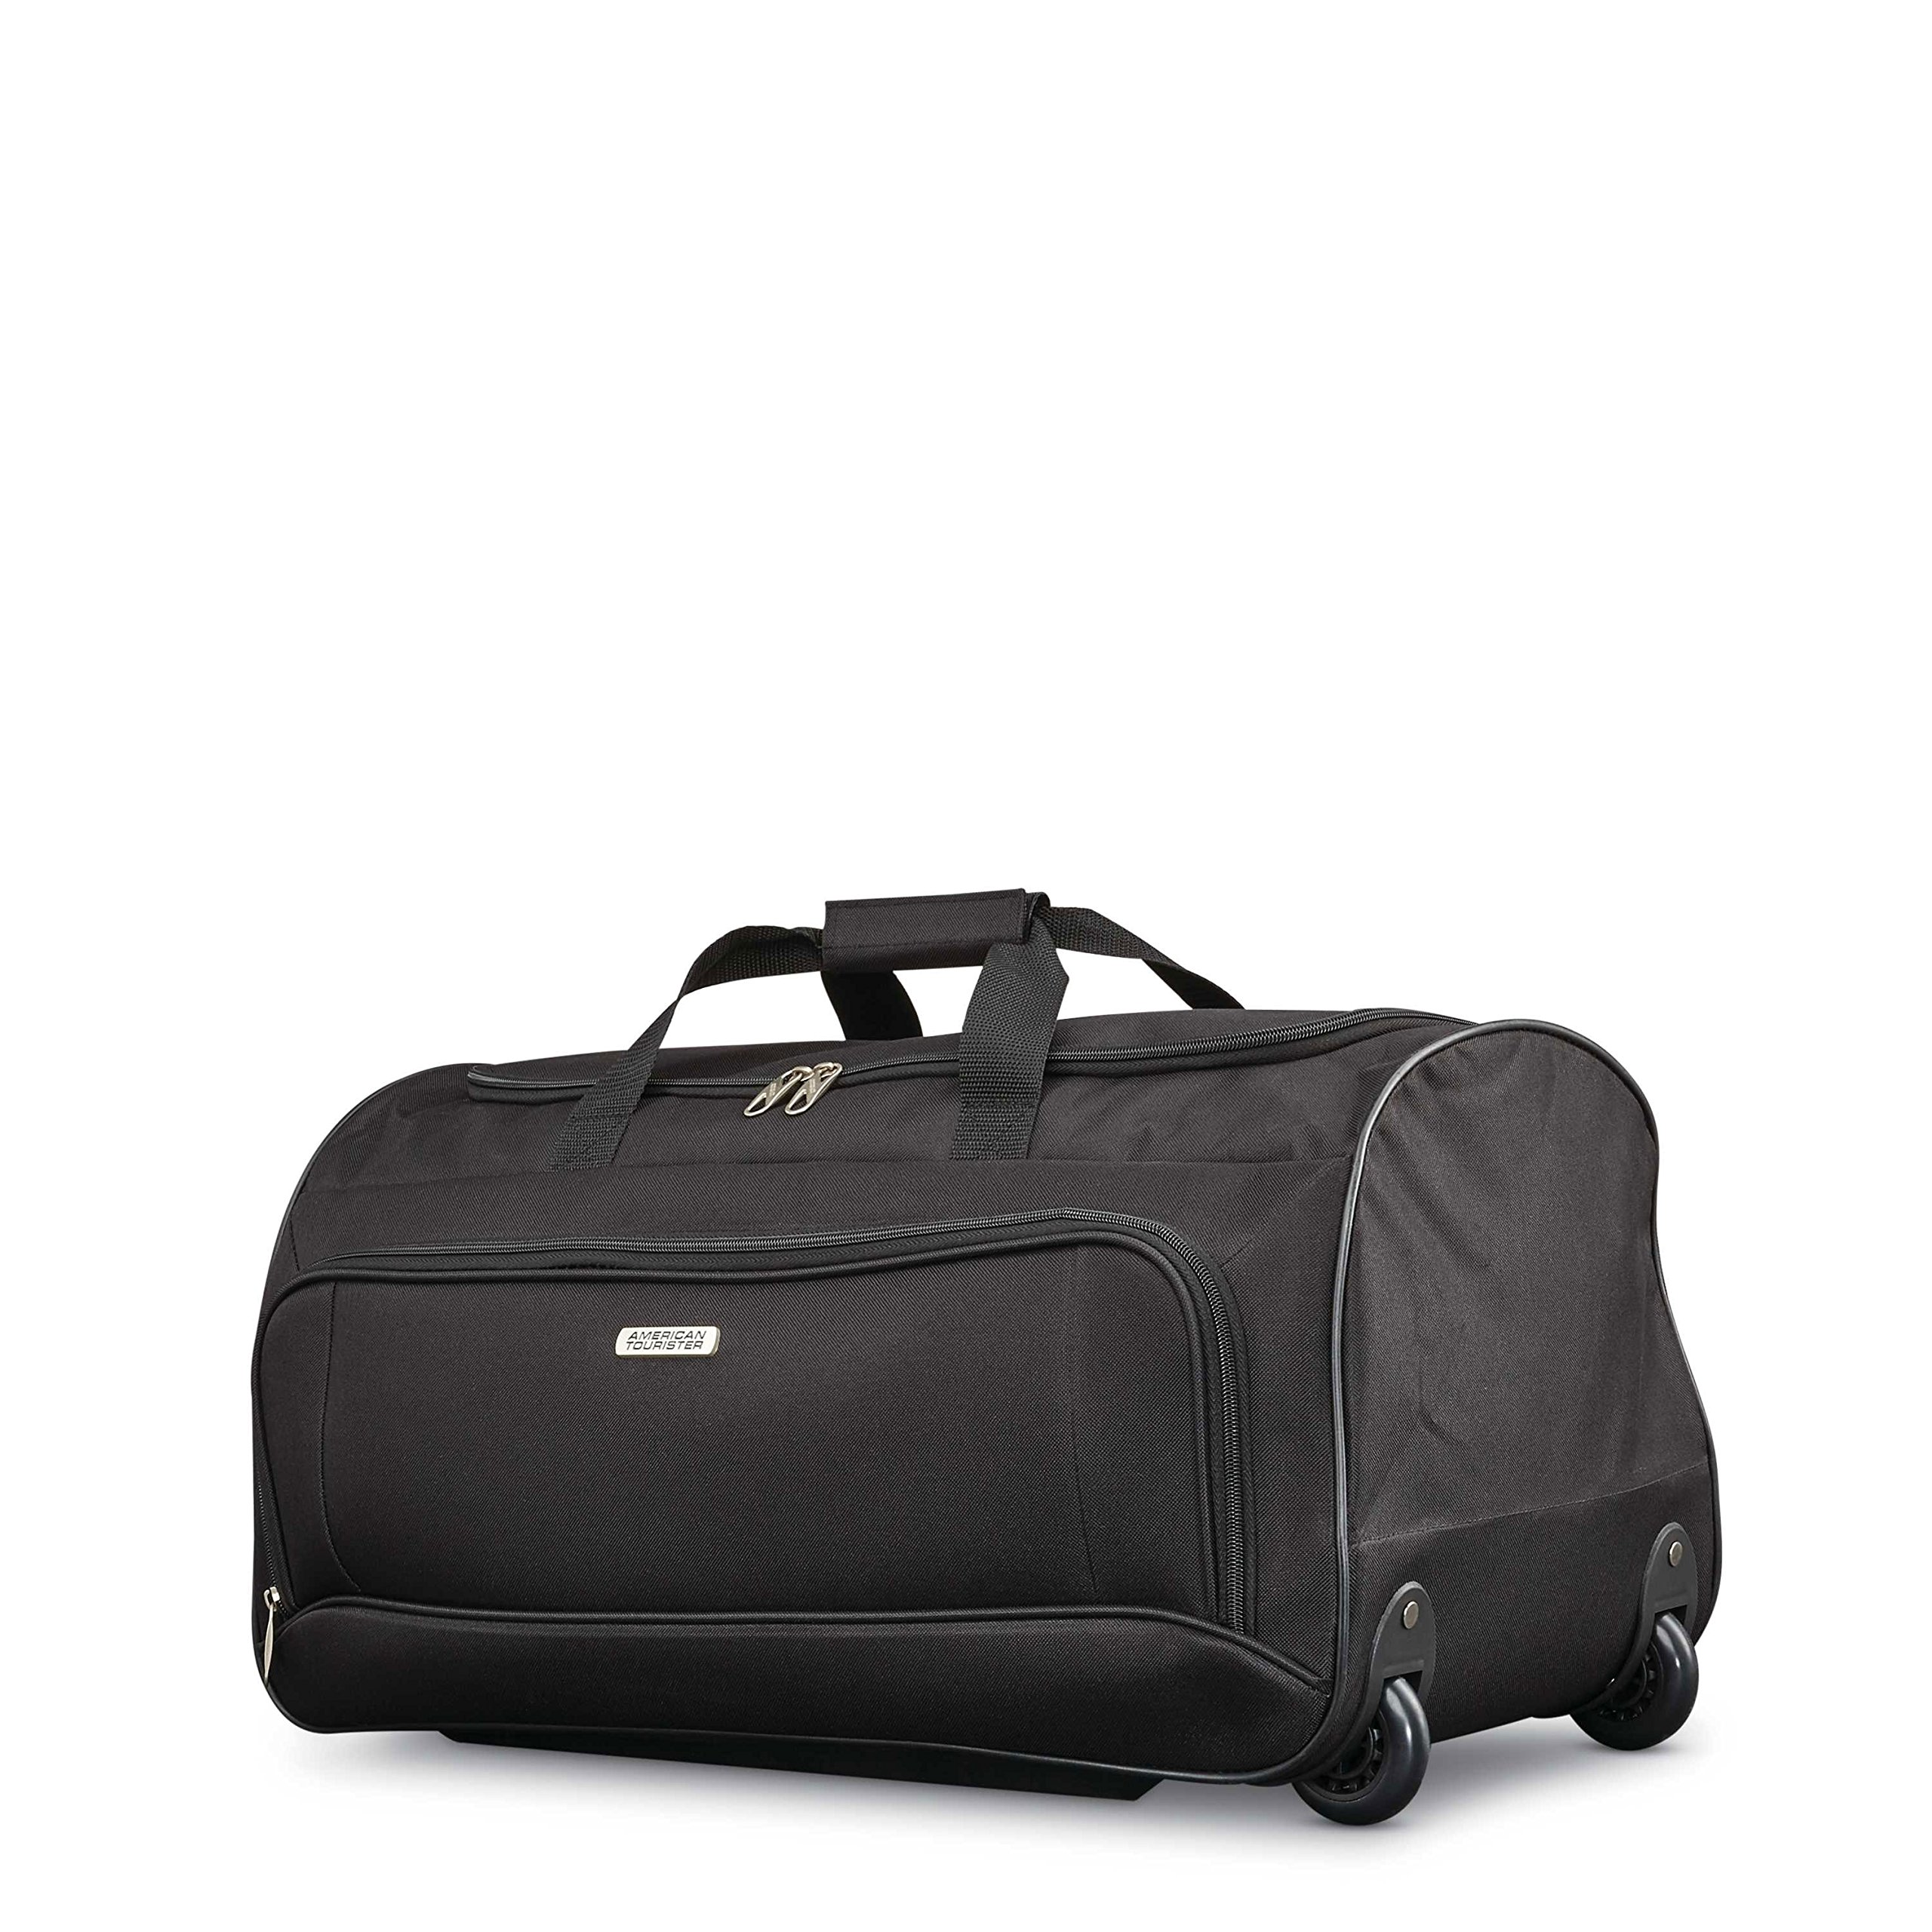 American Tourister Fieldbrook Xlt 4pc Set (Bb/Wh Dfl/ 21/25 Upright), Black by American Tourister (Image #4)